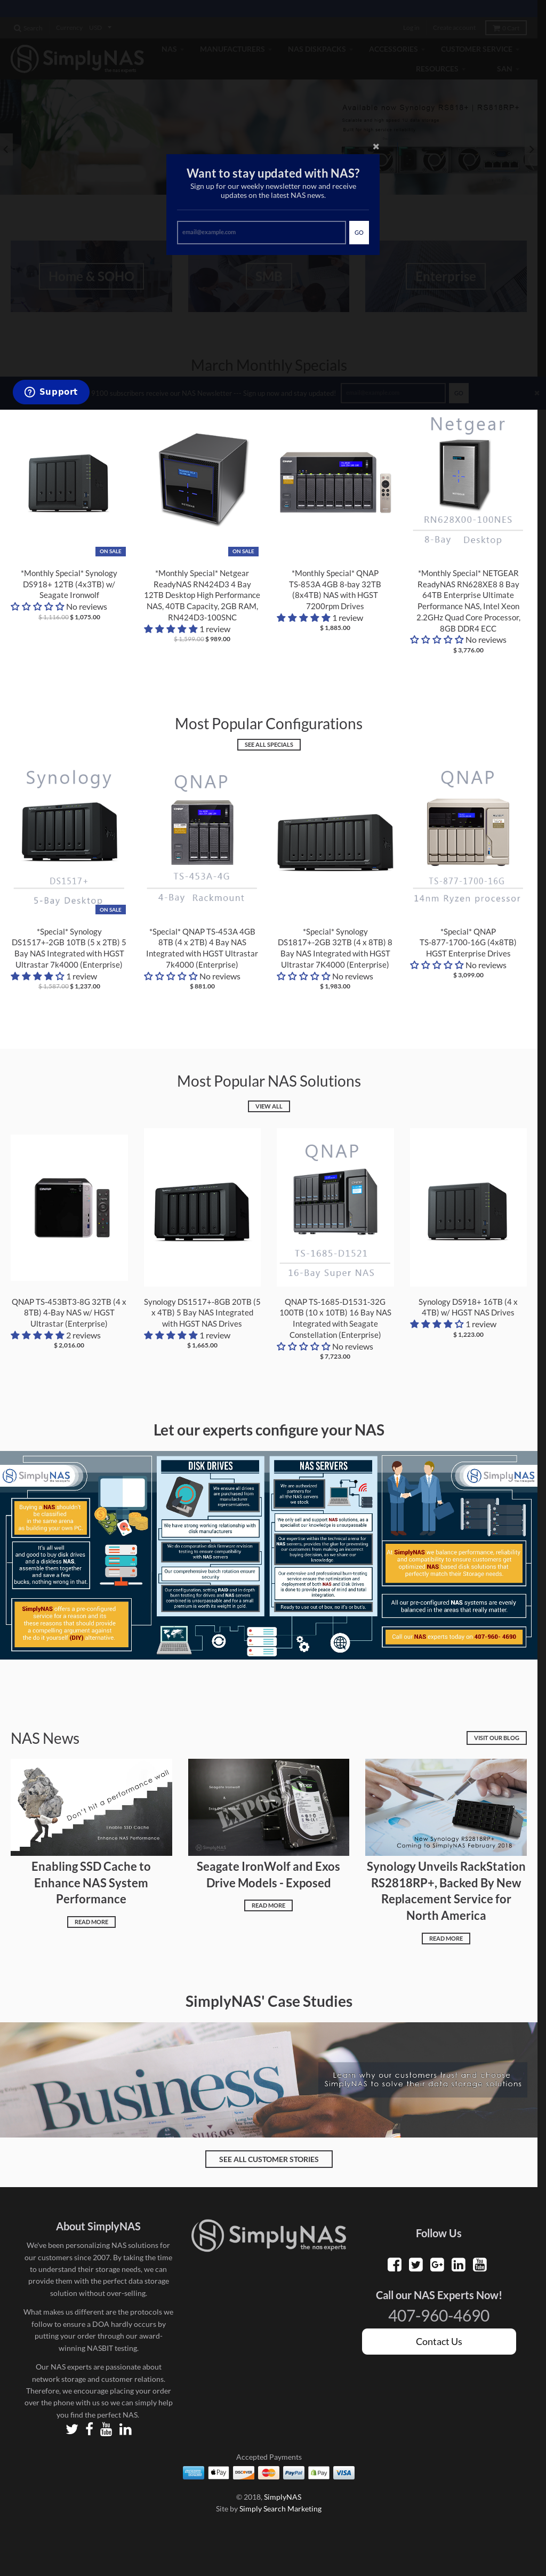 Owler Reports - Press Release: SimplyNAS : QNAP TS-853PRO